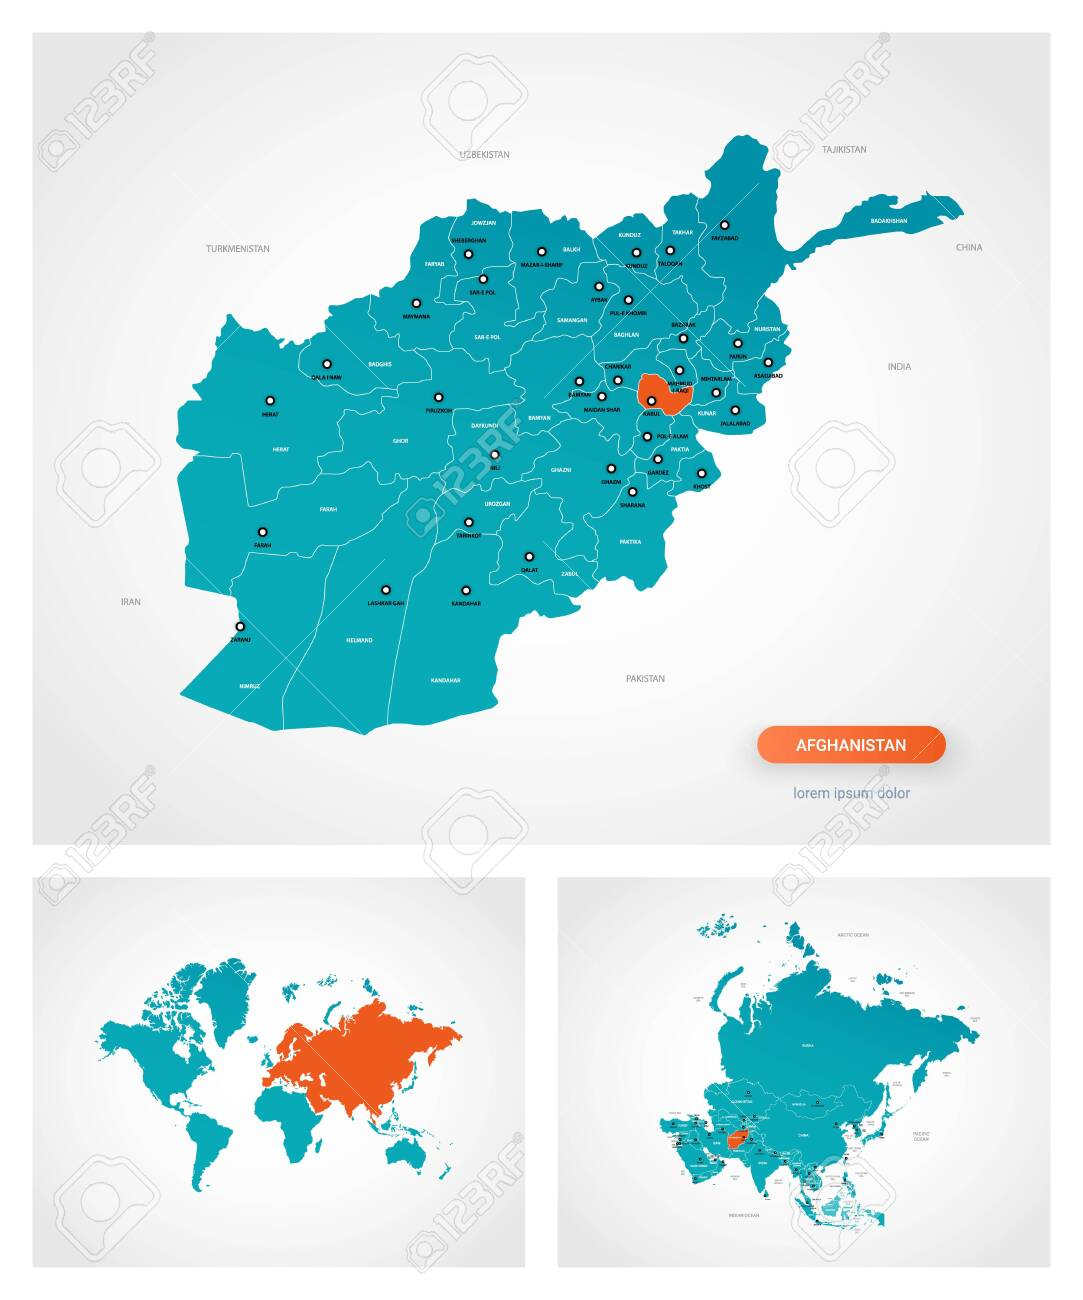 Editable Template Of Map Of Afghanistan With Marks Afghanistan On World Map And On Asia Map Ilustraciones Vectoriales Clip Art Vectorizado Libre De Derechos Image 144439944